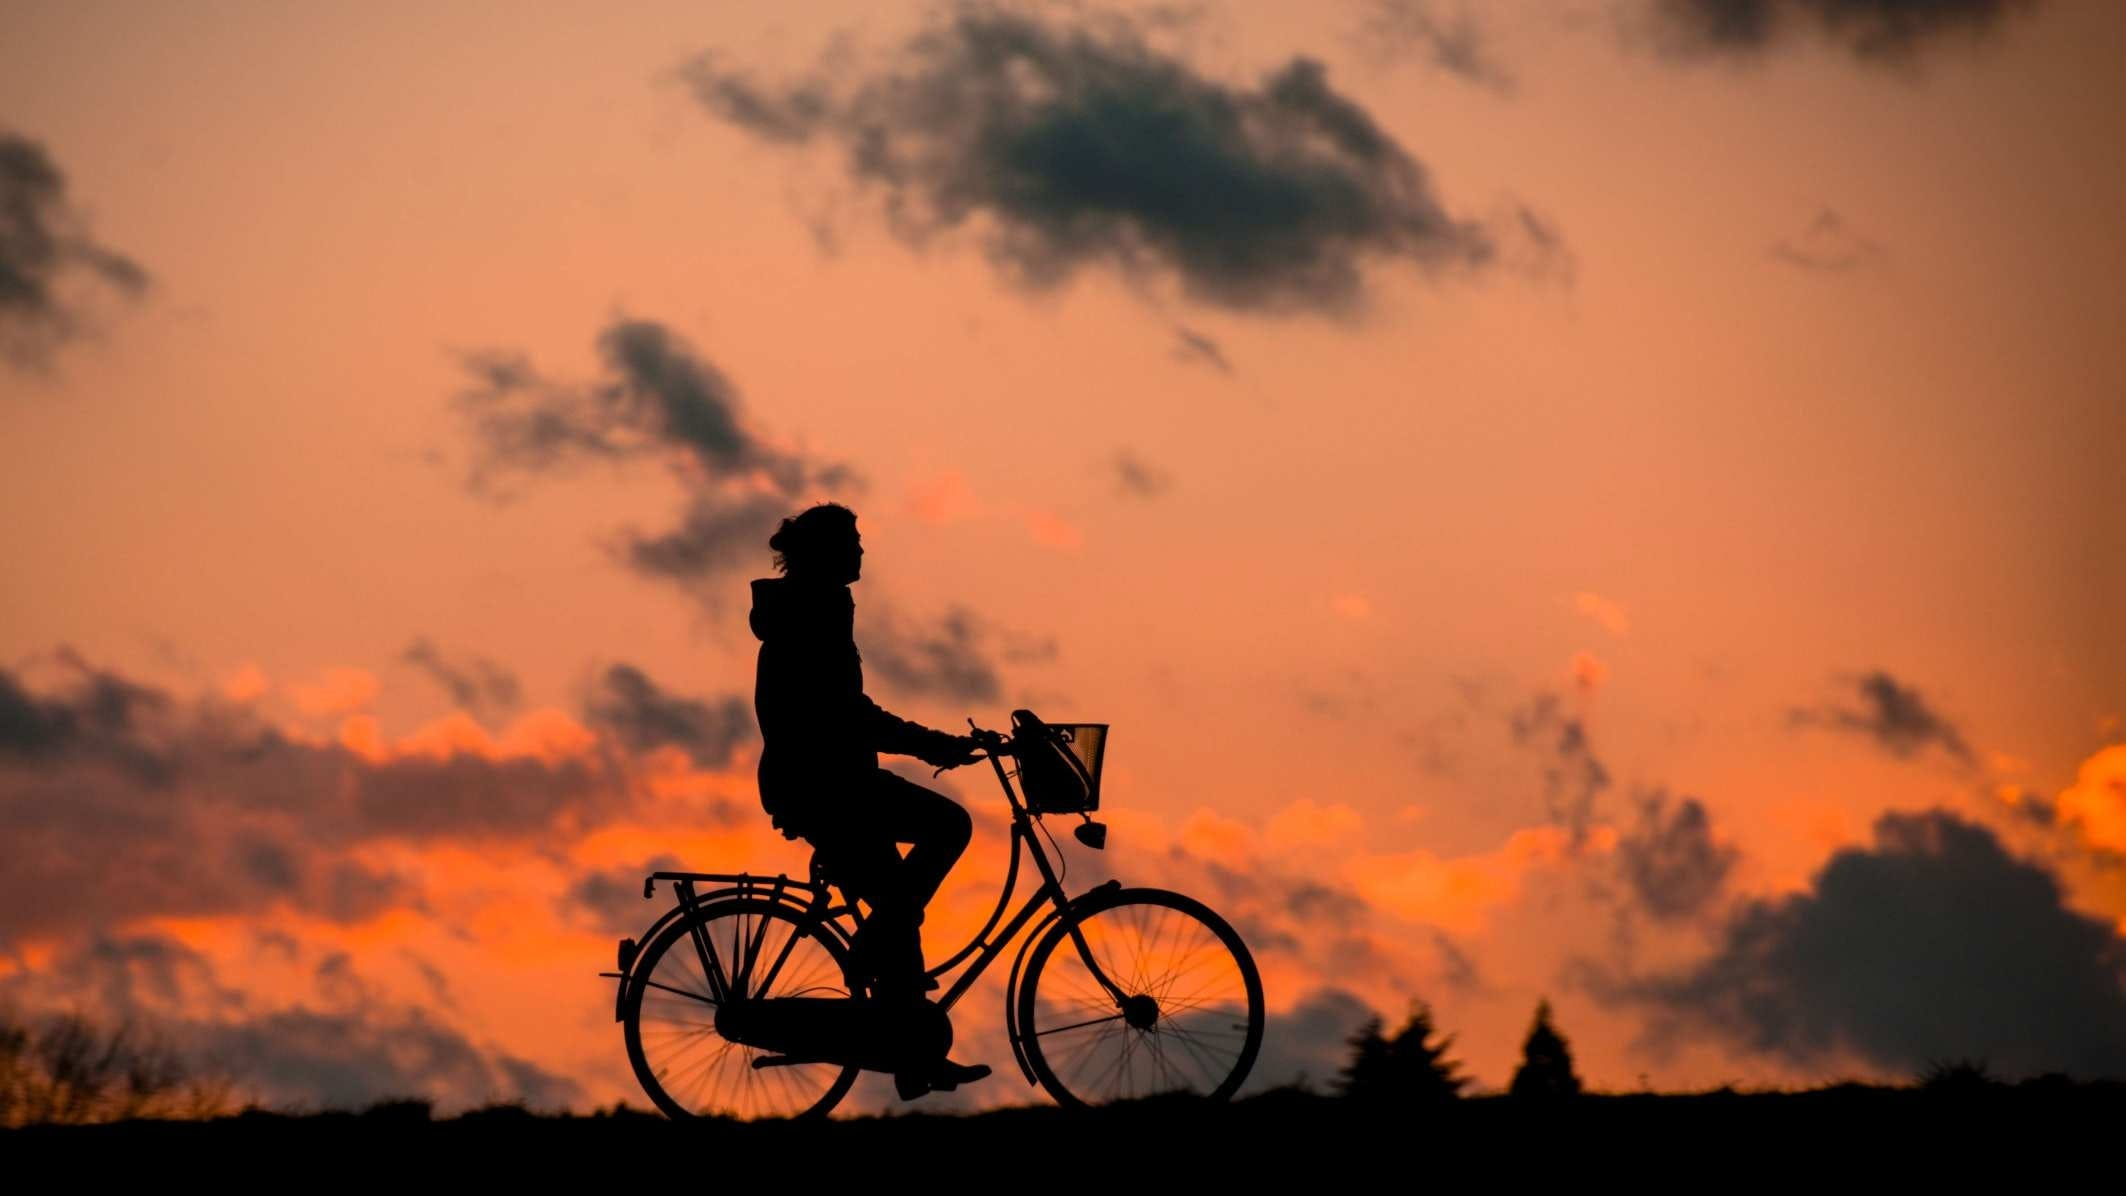 Silhouette of Person Riding a Bike during Sunset